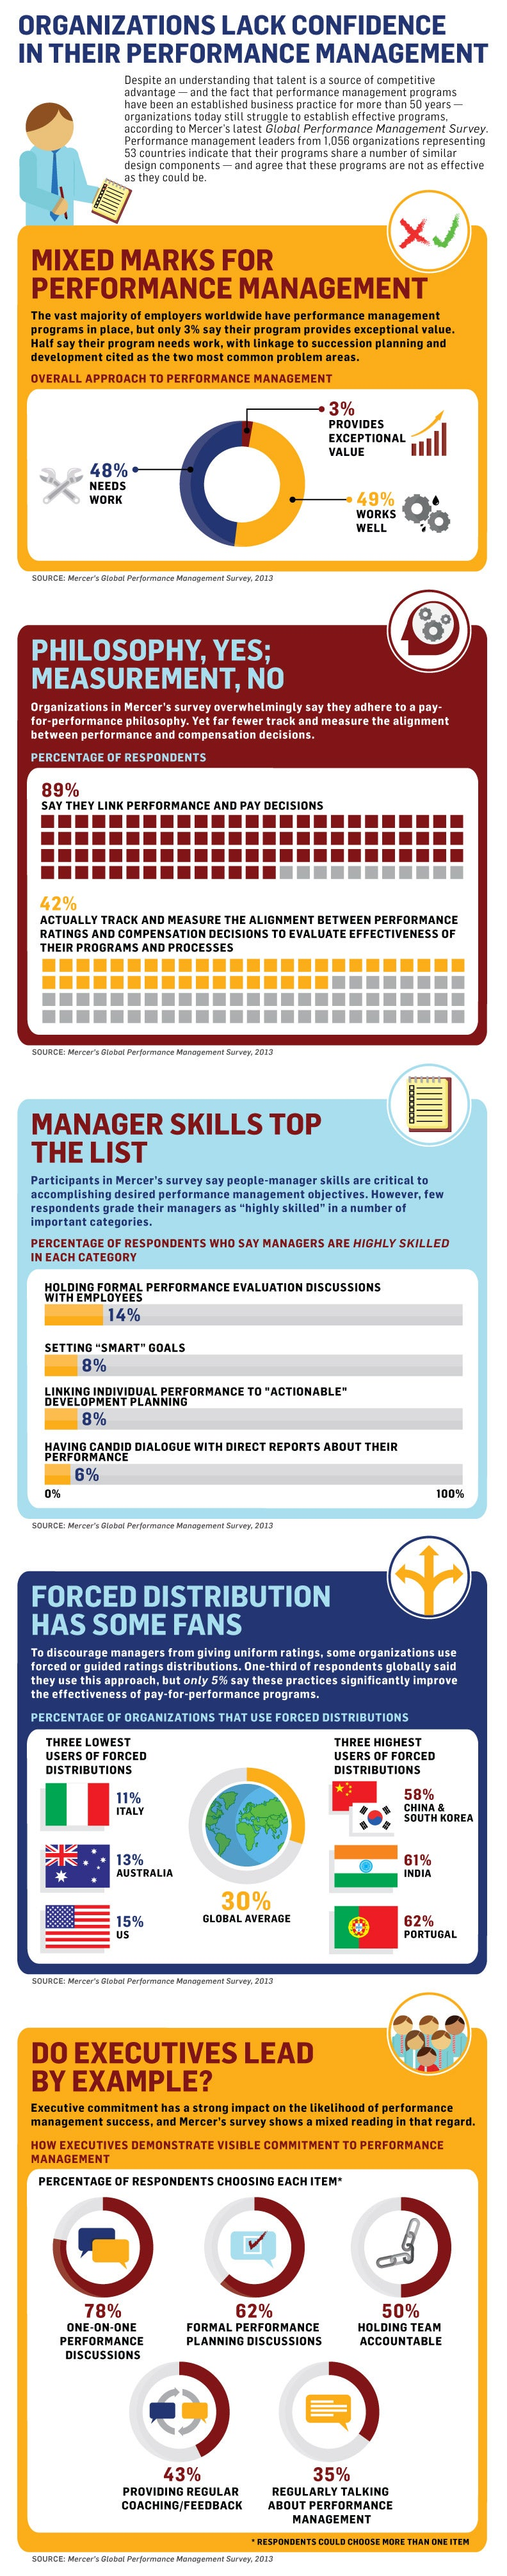 How Well Are Managers Really Evaluating Their Employees? (Infographic)